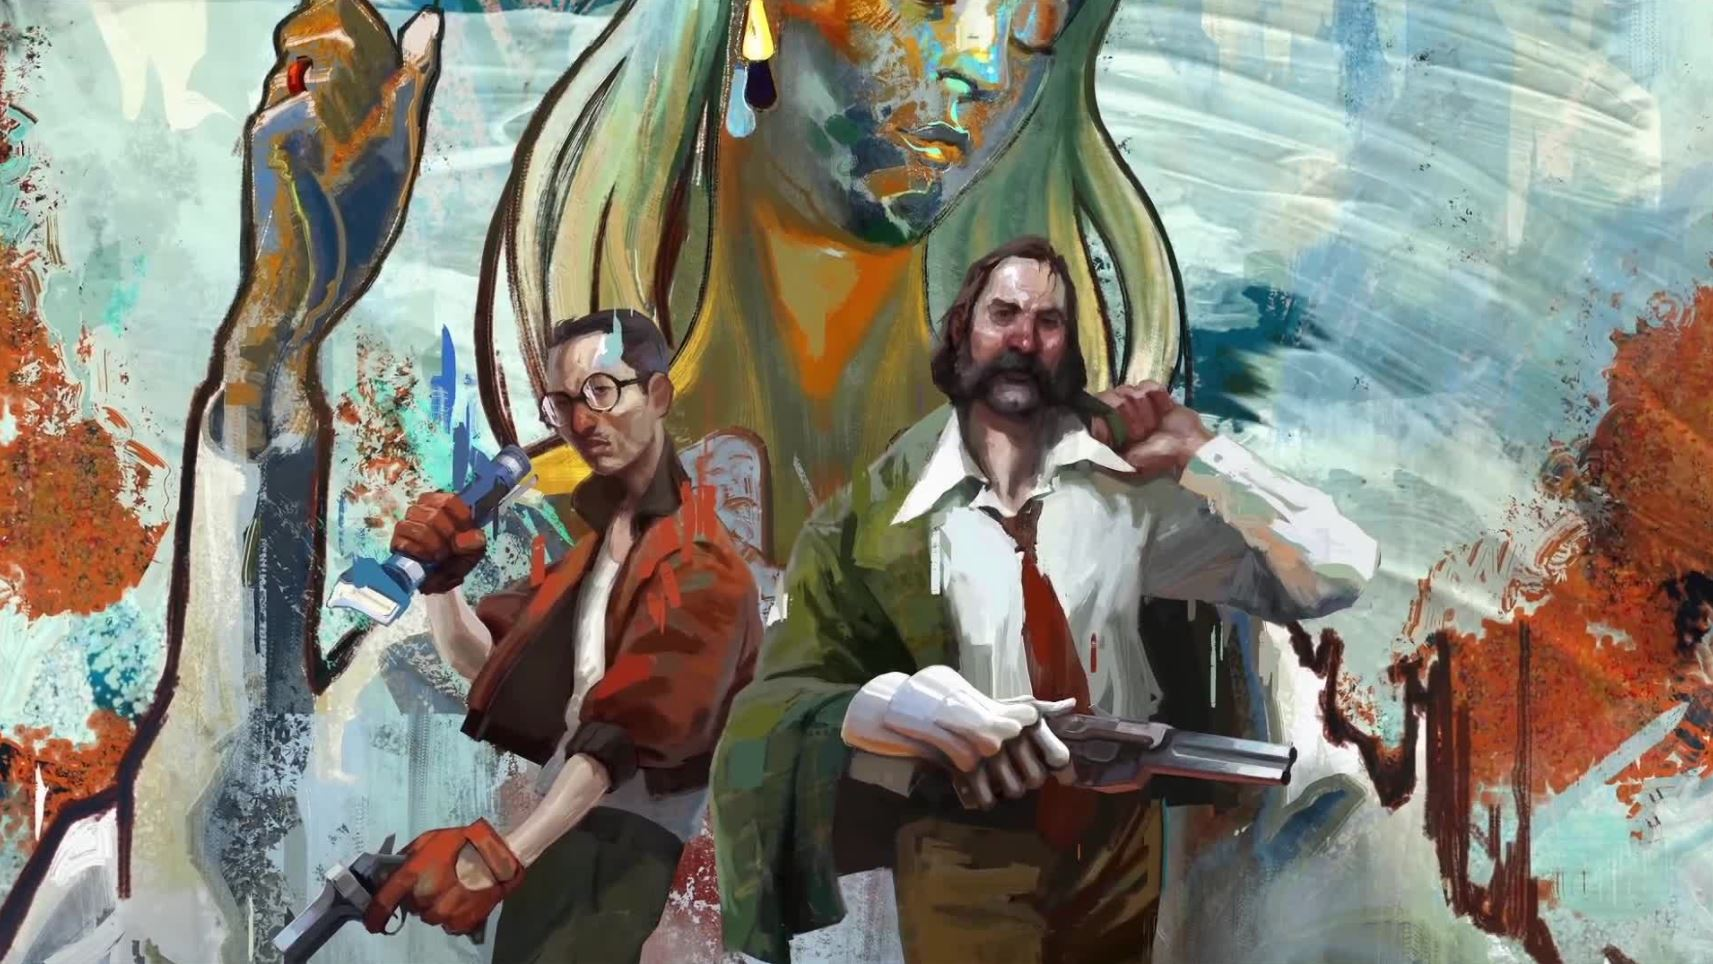 disco-elysium-still-coming-to-ps5-and-ps4-in-march-confirms-developer-depsite-no-firm-date-yet